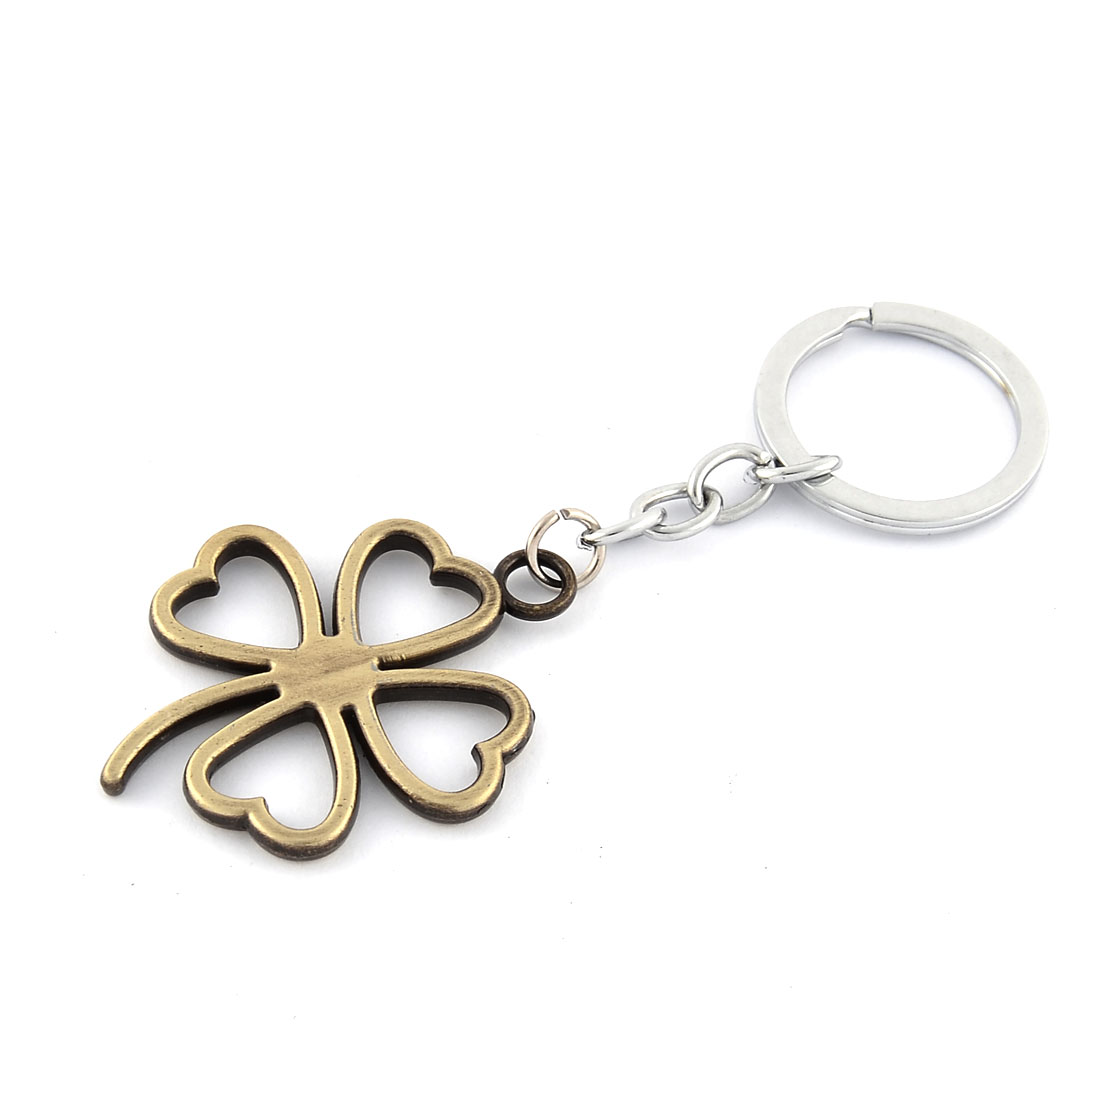 Metal Lucky Grass Shaped Pendant Ornament Key Chain Golden Tone 10.2cm Length